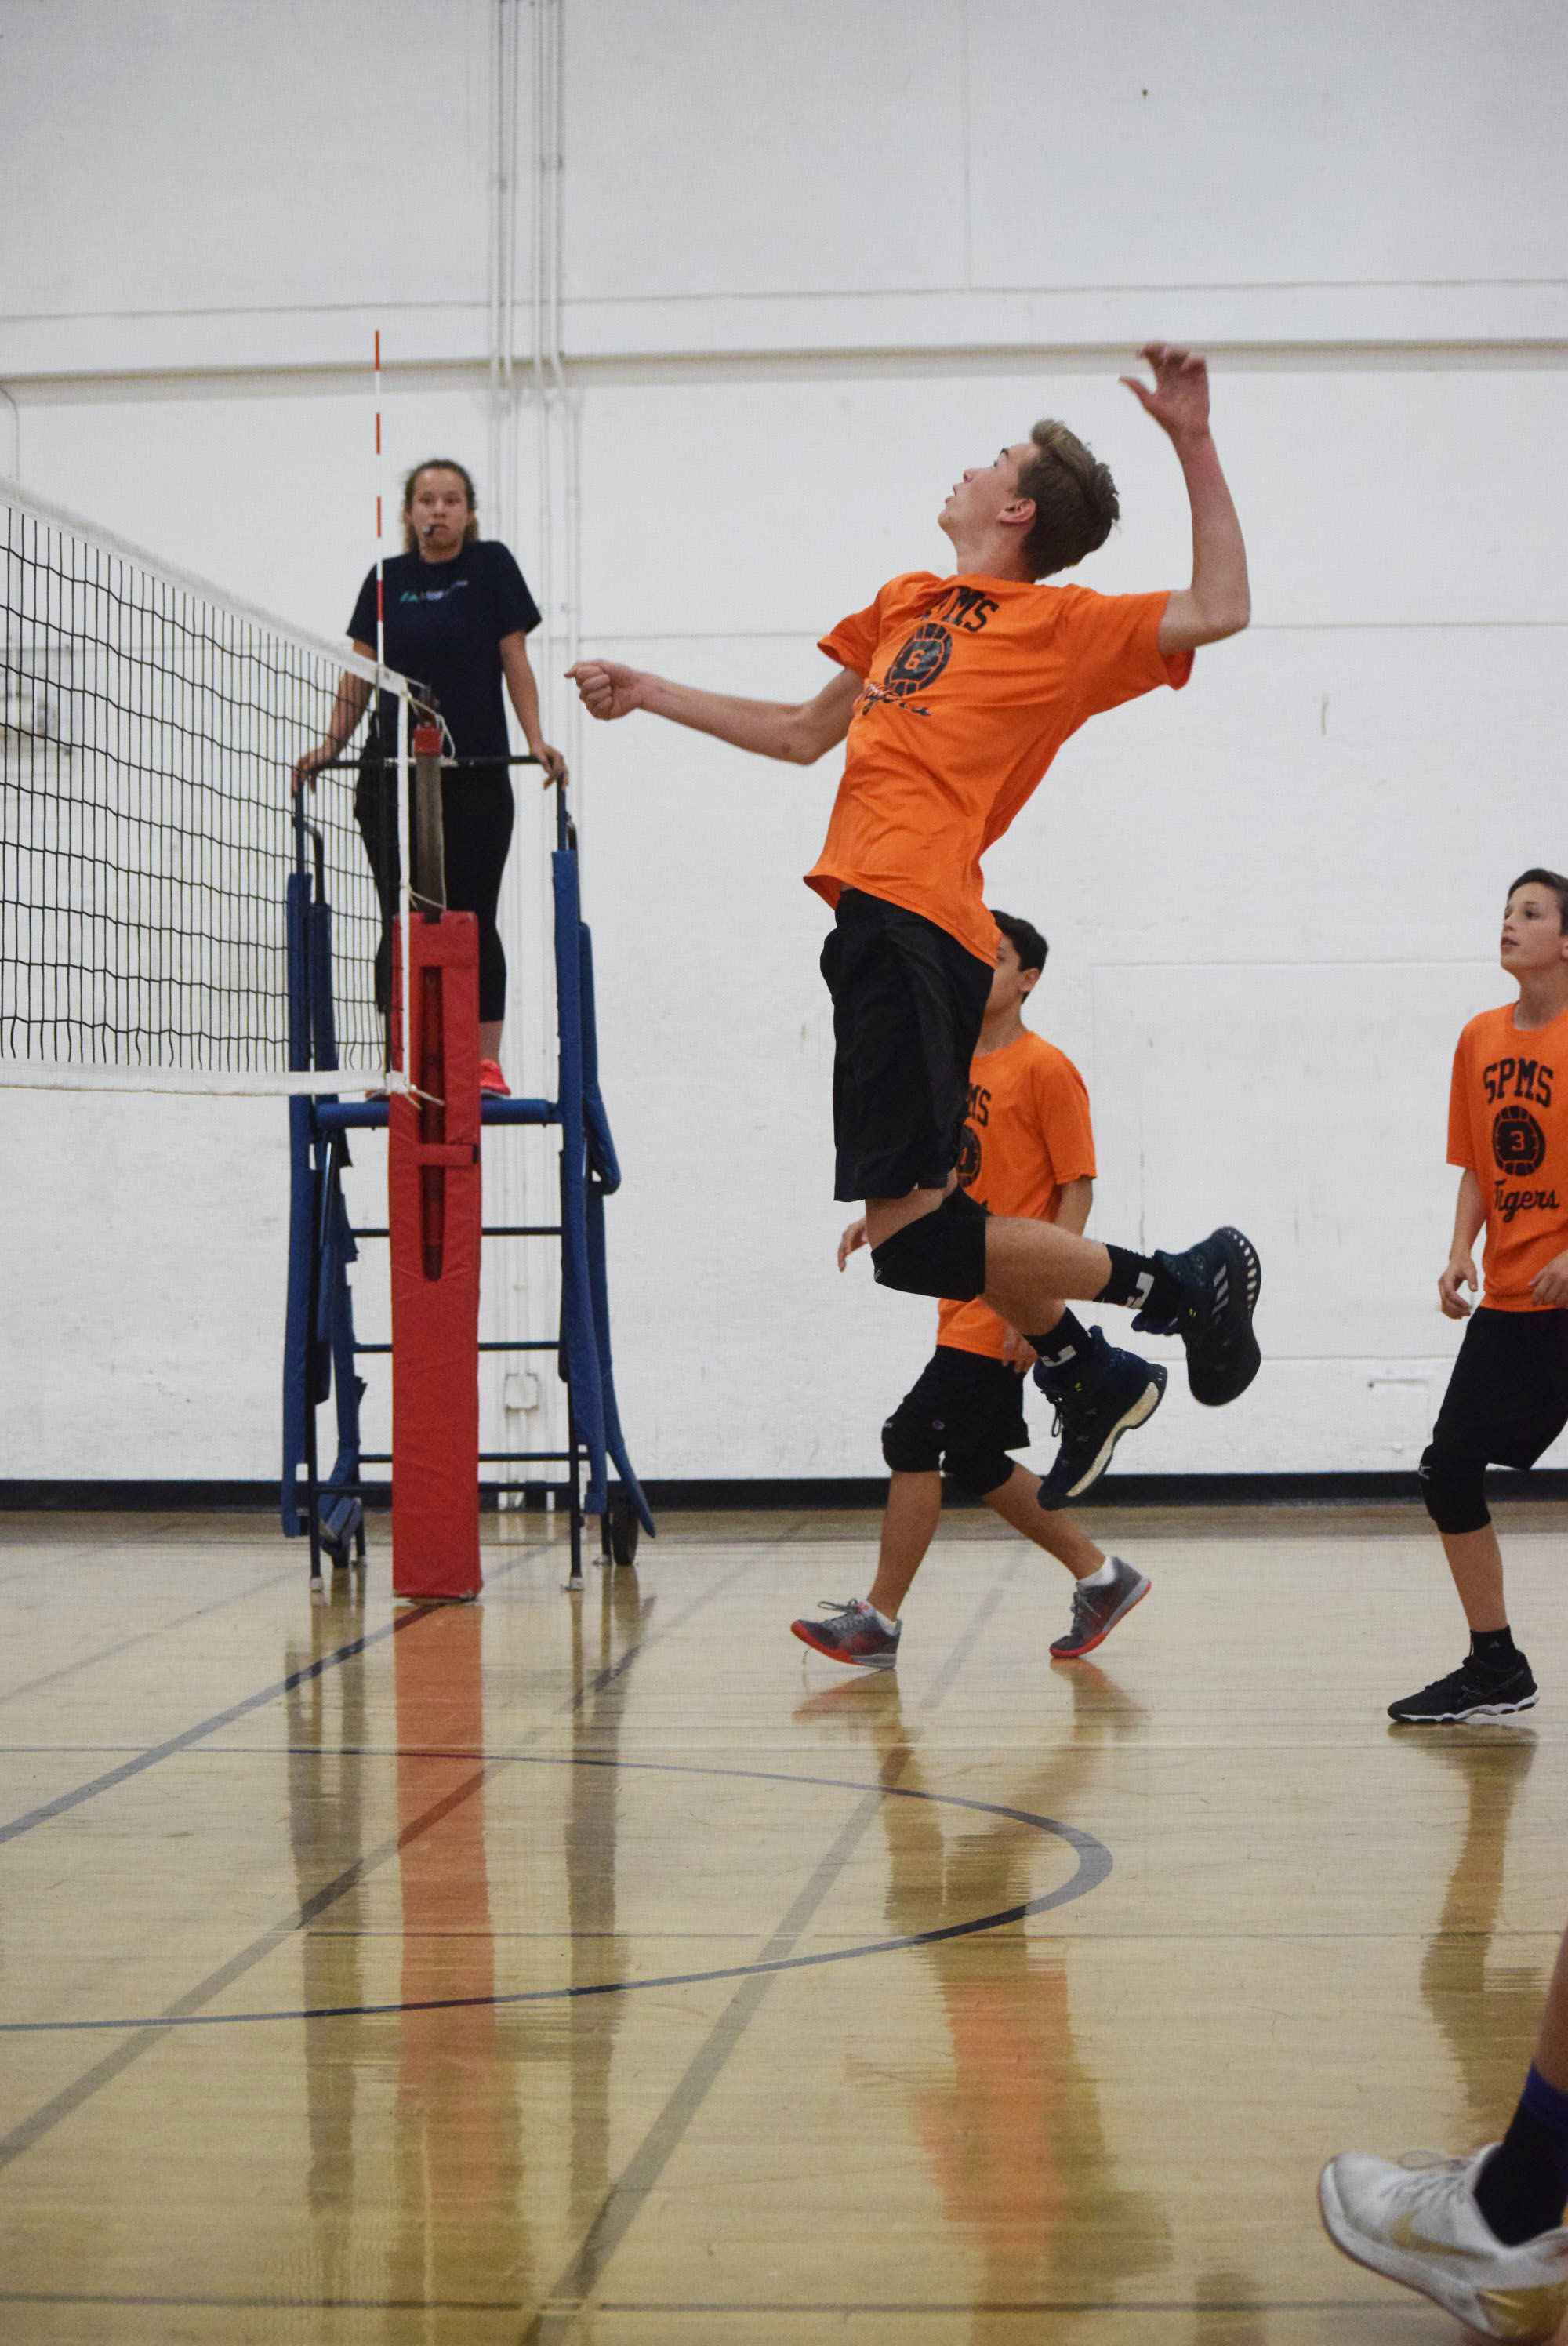 Boy's Volleyball team dominates La Canada - The SPMS boy's volleyball team showed La Canada what they know about volleyball during their first game on Tuesday, April 17. They performed with determination which showed as they won all the sets they played. But it wasn't just one person who made the win, it was a team effort. The captains of the team who showed great passion include Jake Woo (#8), Thompson Crockett (#11), and Tony Rodz (#7). La Canada struggled to receive SPMS's serves and spikes, but when they did, Jonathan Guy (#6) and Mikey Ebner (#14) were prepared to block the ball. SPMS has great communication on the court and it starts with the pass. During the game Tony Rodz, Thompson Crockett, and Noah Kuhn (#5) had some amazing passes to our school's setter Aidan Hilger (#3). Aidan would then beautifully set the ball to a hitter who was normally, Jake Woo, Caleb Hunt (#15), or Grant Huntley (#9) to score a point.